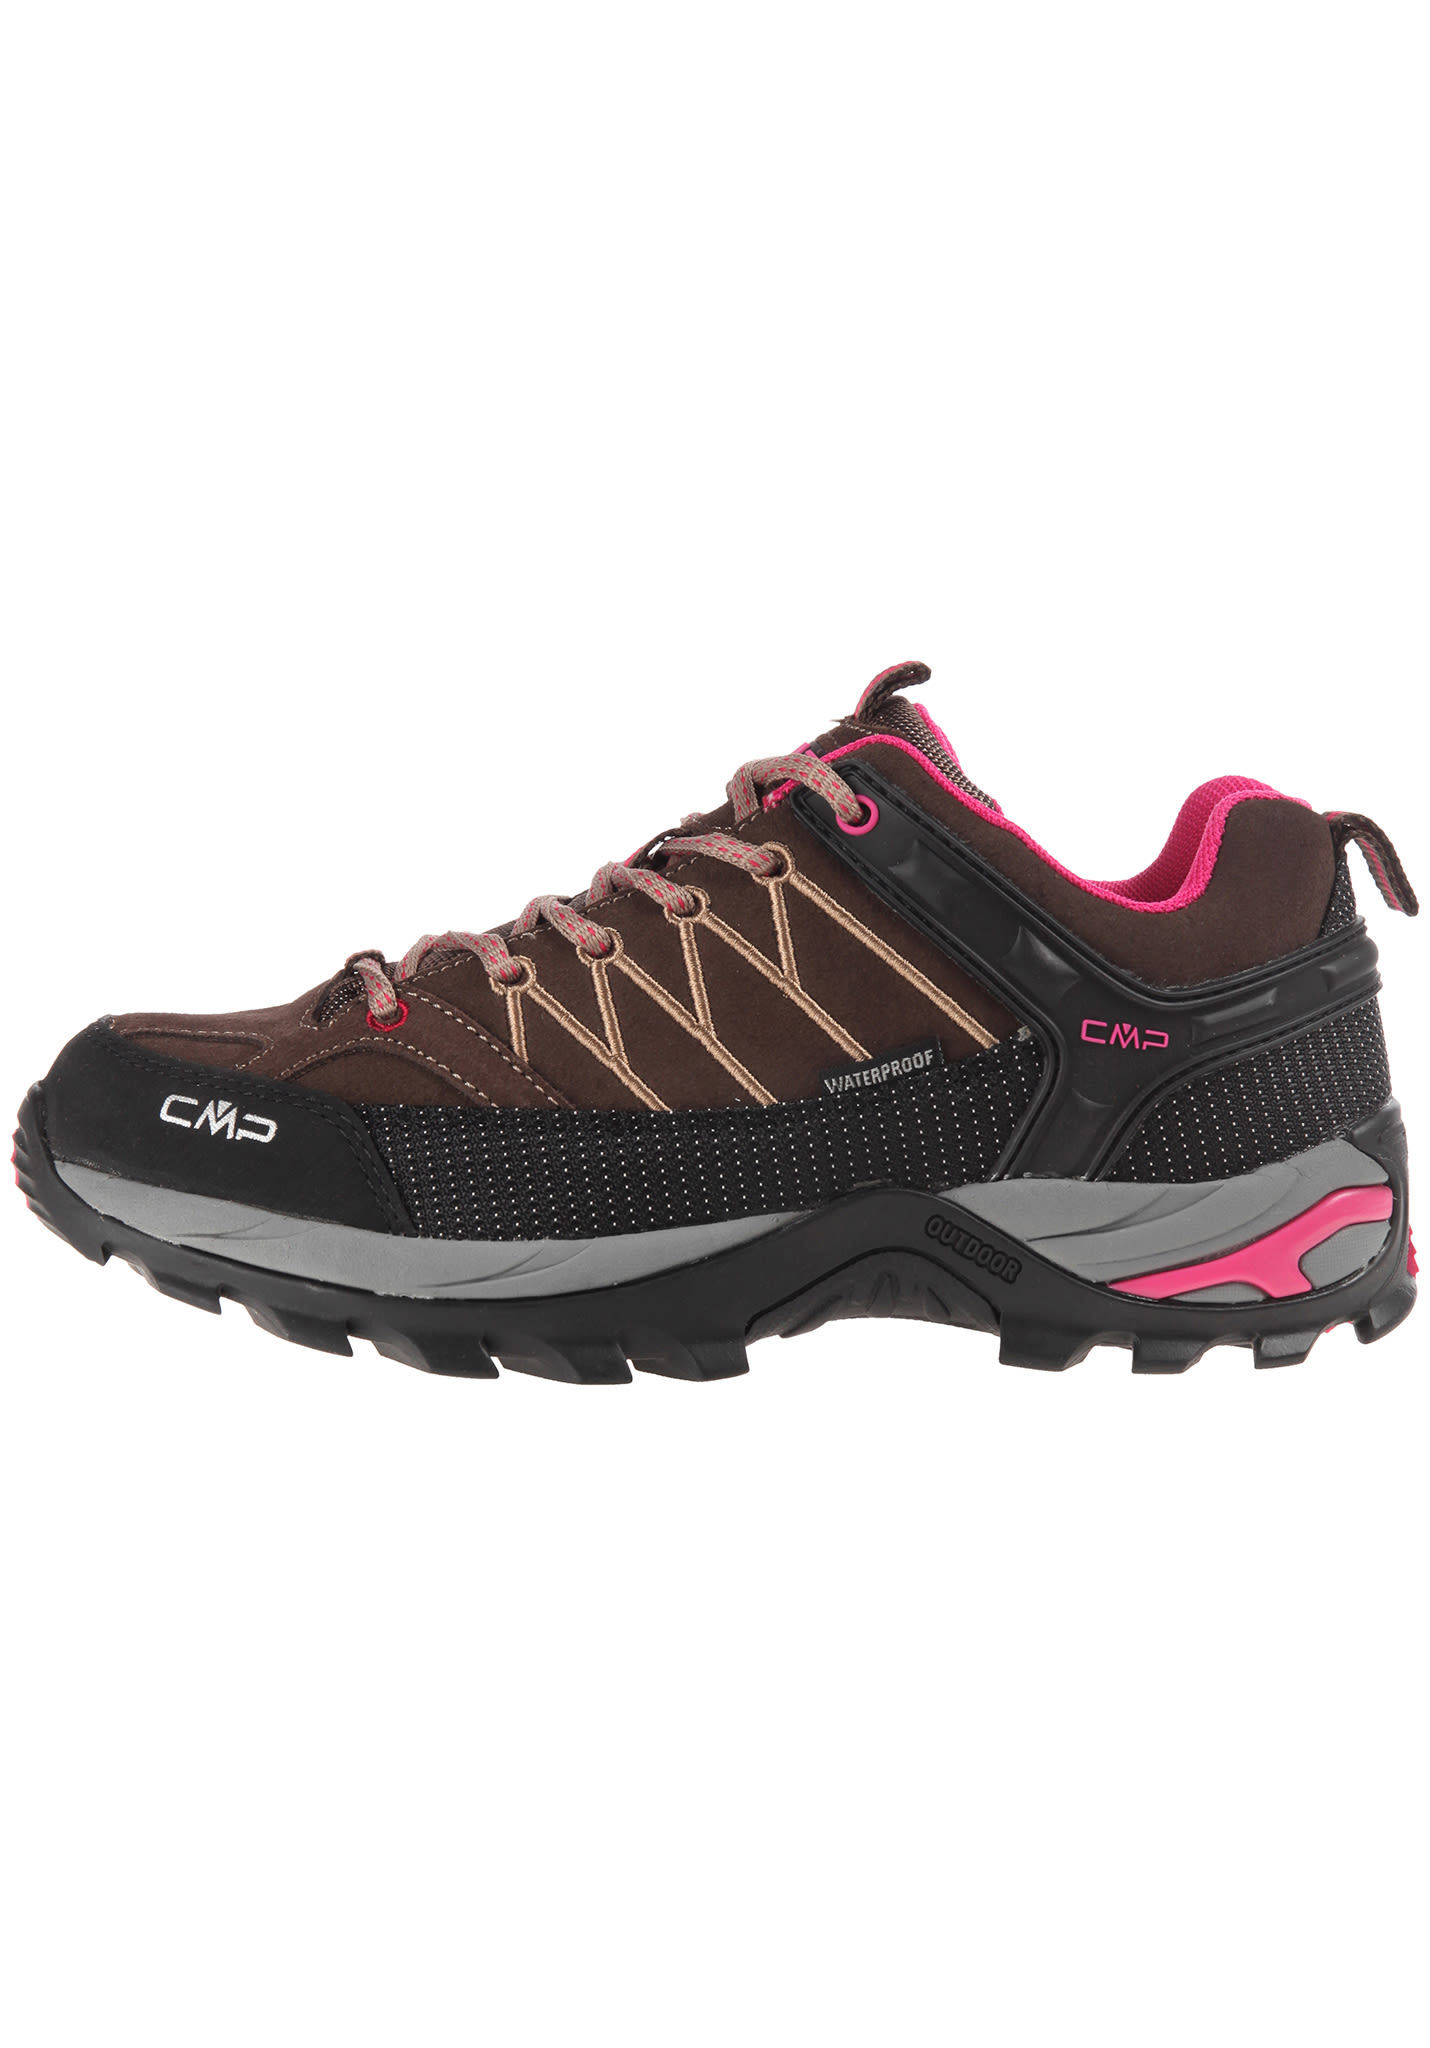 CMP Rigel Low - Scarpe da trekking per Donna - Marrone - Planet Sports 47cc9a99377